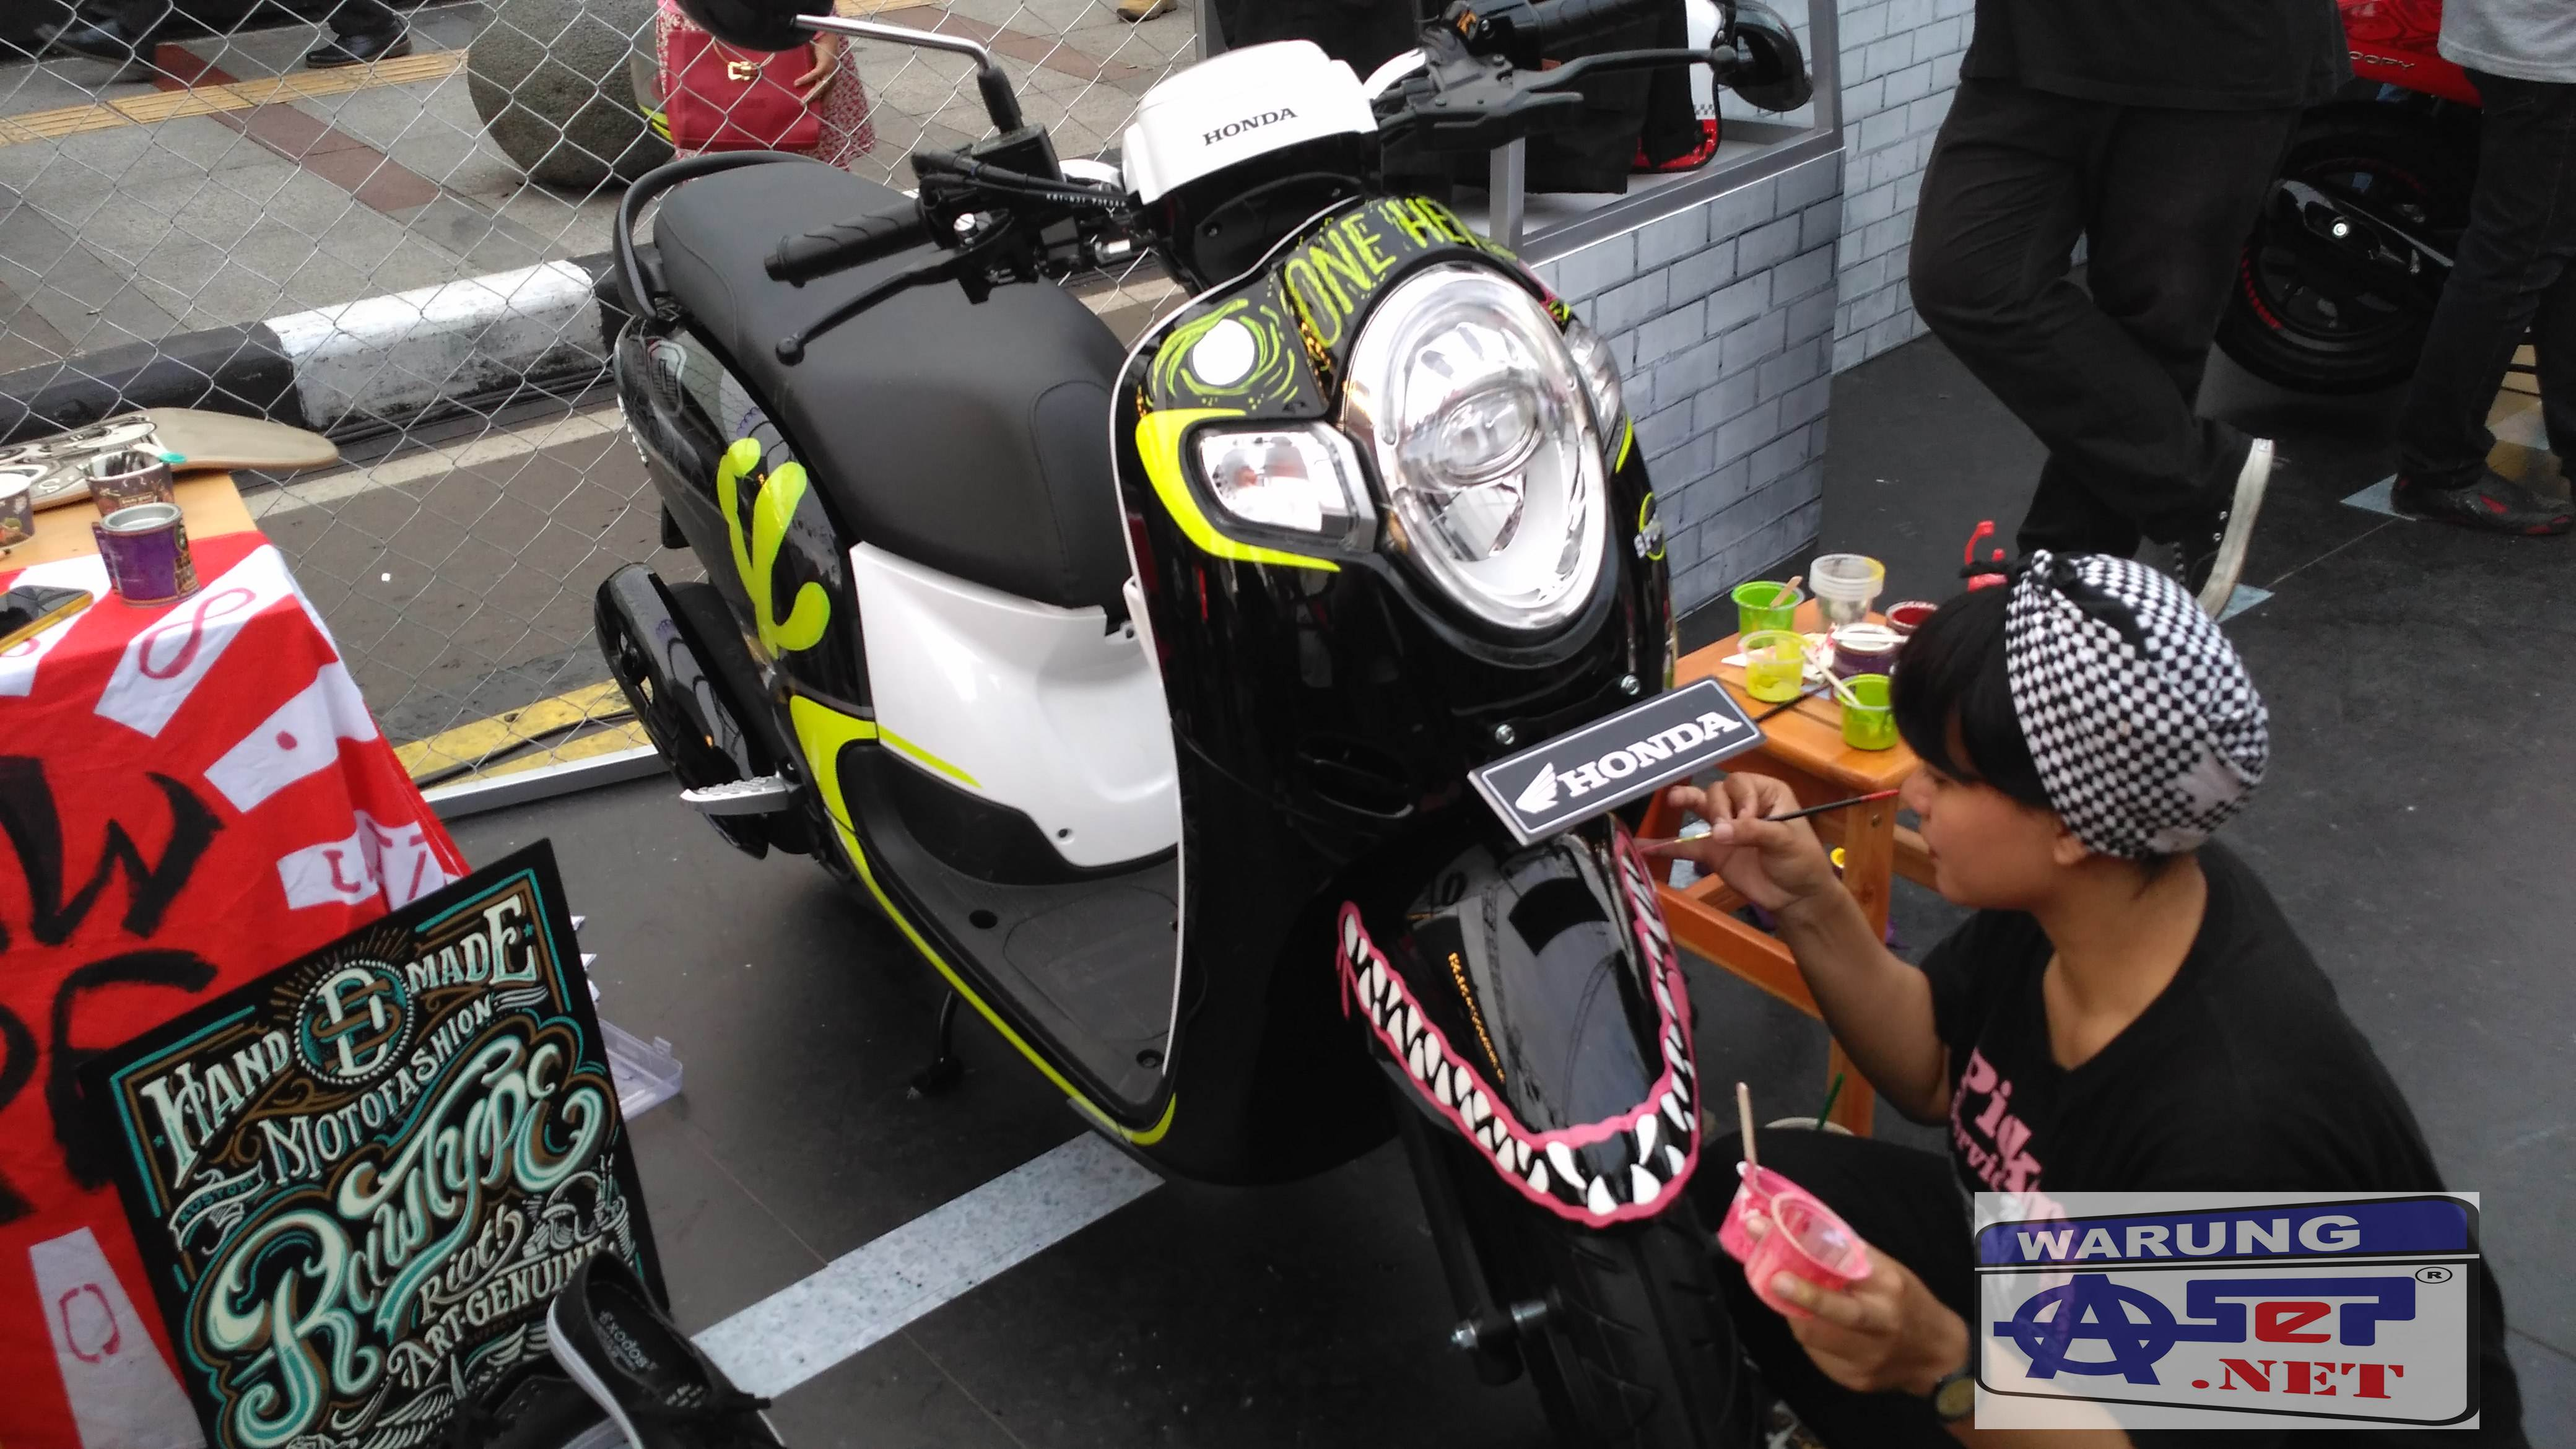 IMG_20170429_162346scoopy day bandung